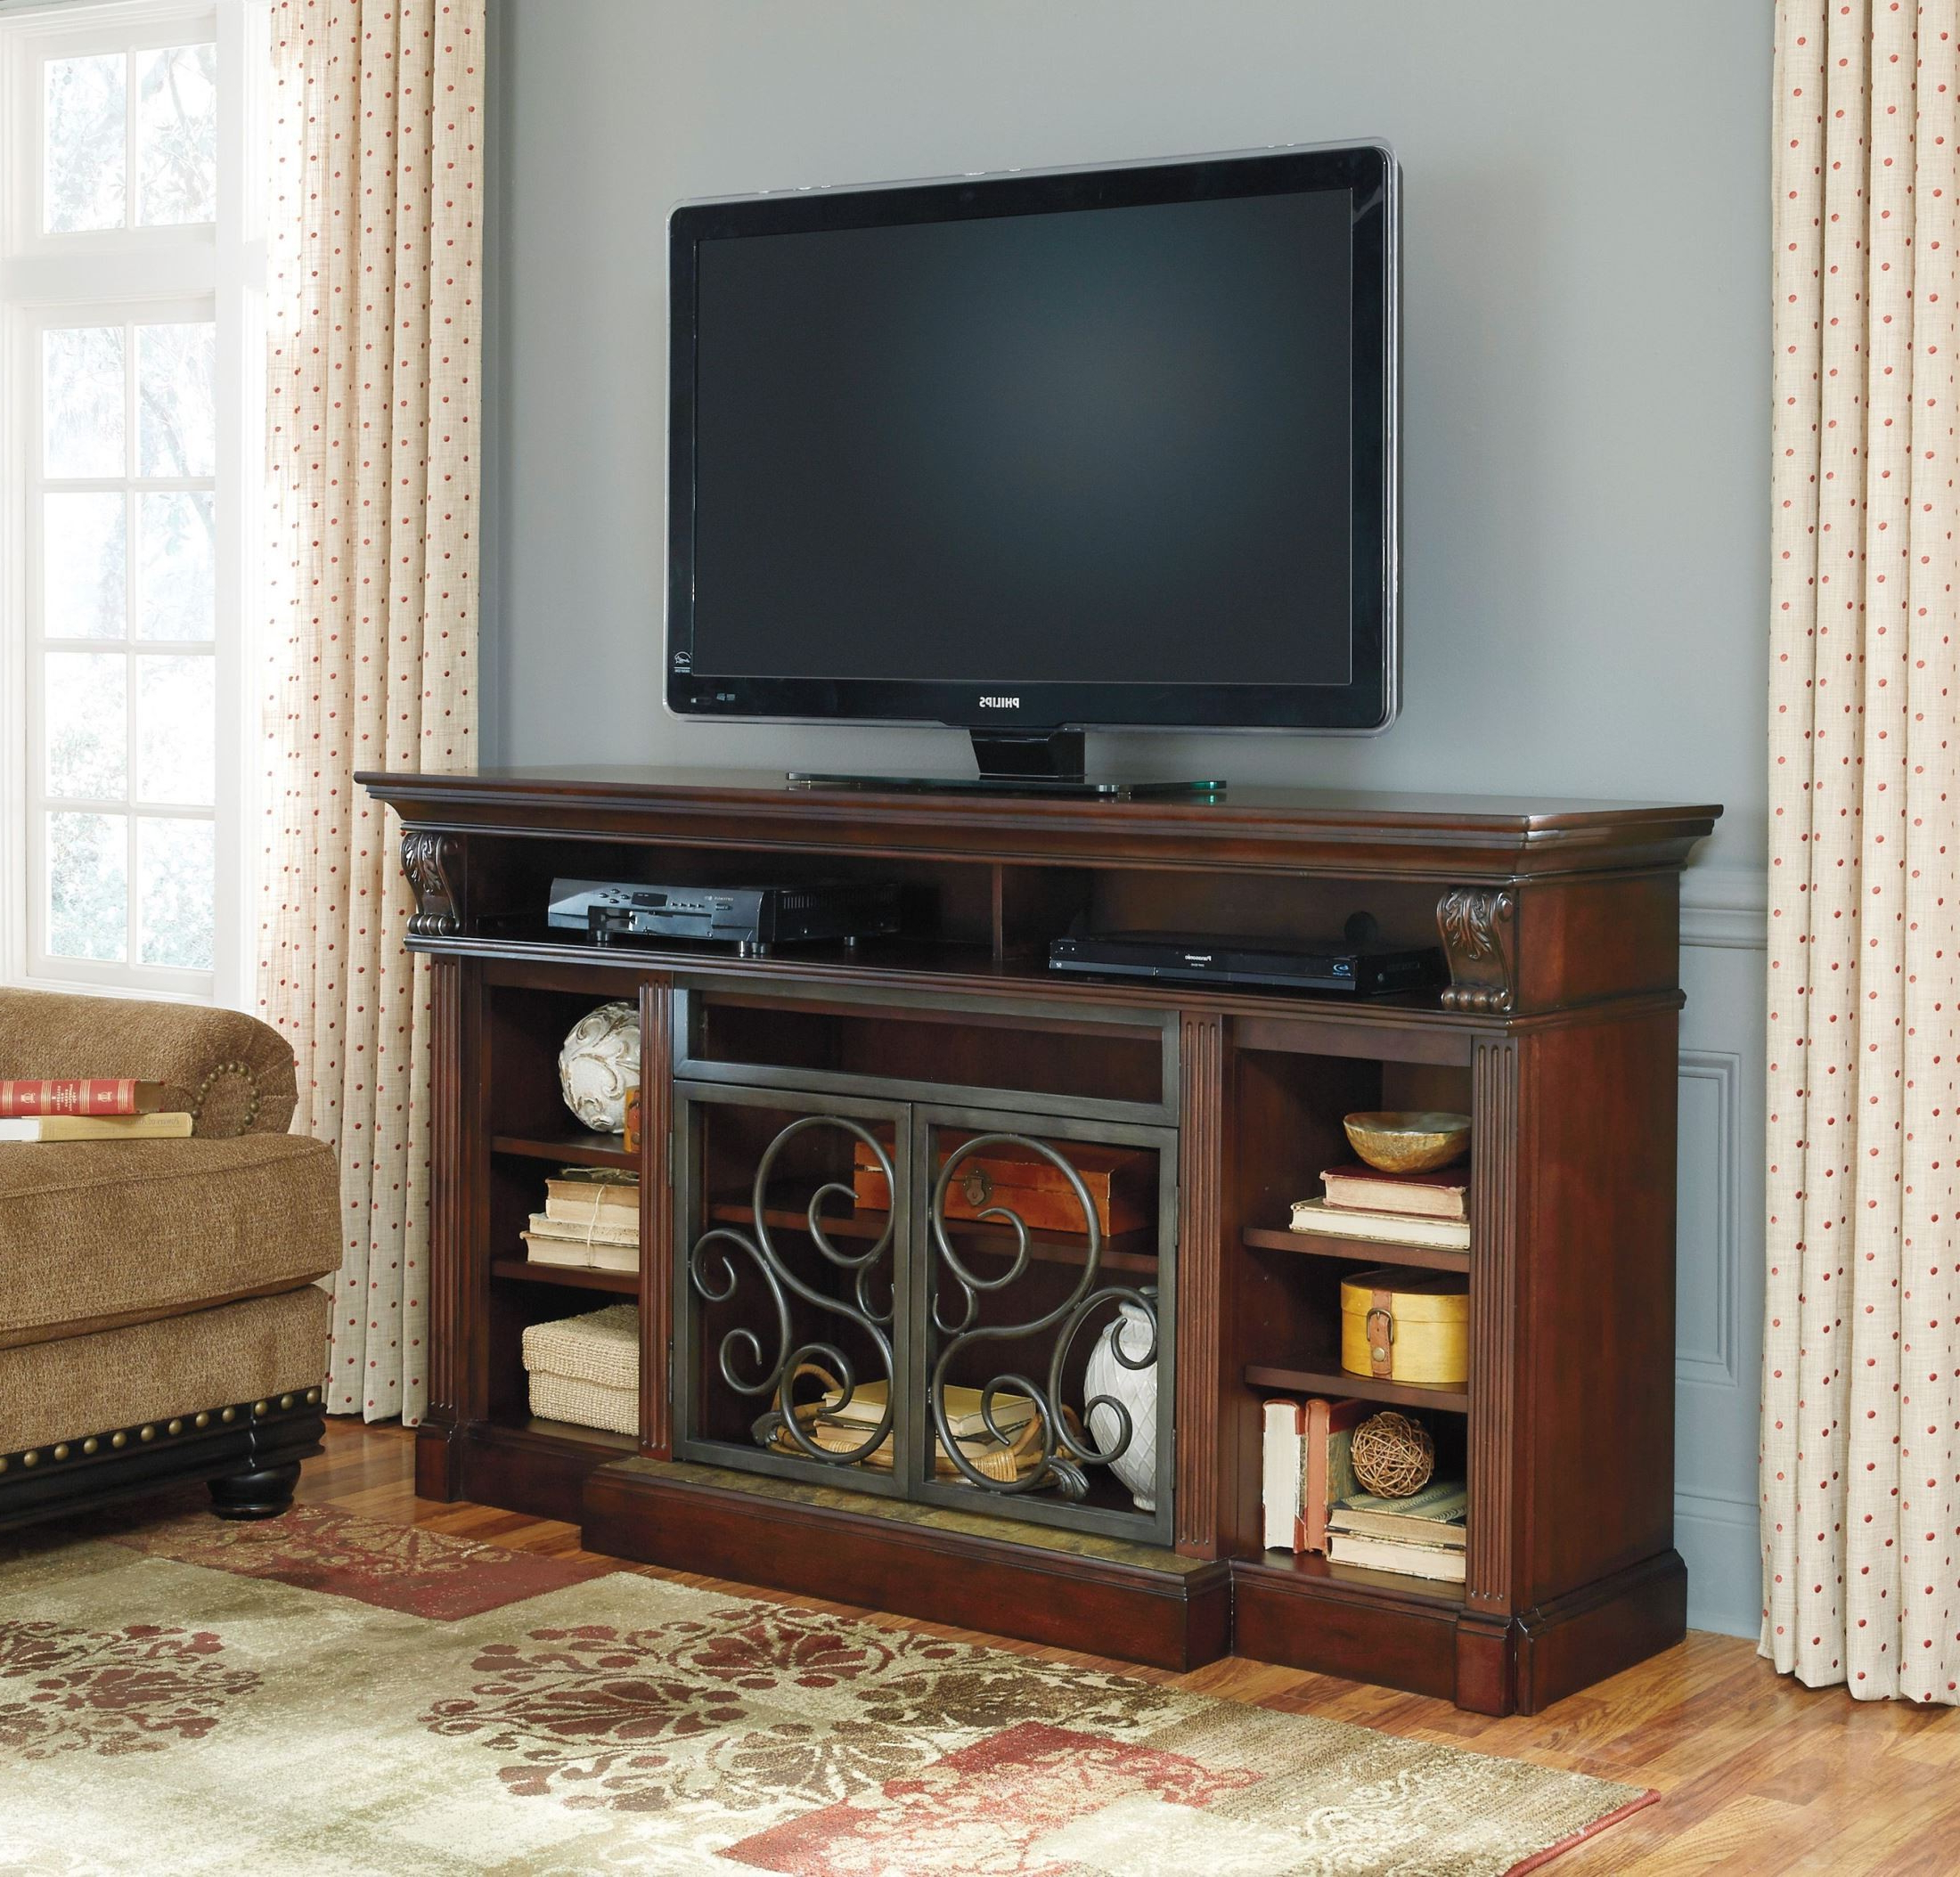 Alymere Extra Large Tv Stand With Fireplace Insert From Intended For Trendy Carbon Extra Wide Tv Unit Stands (View 9 of 10)